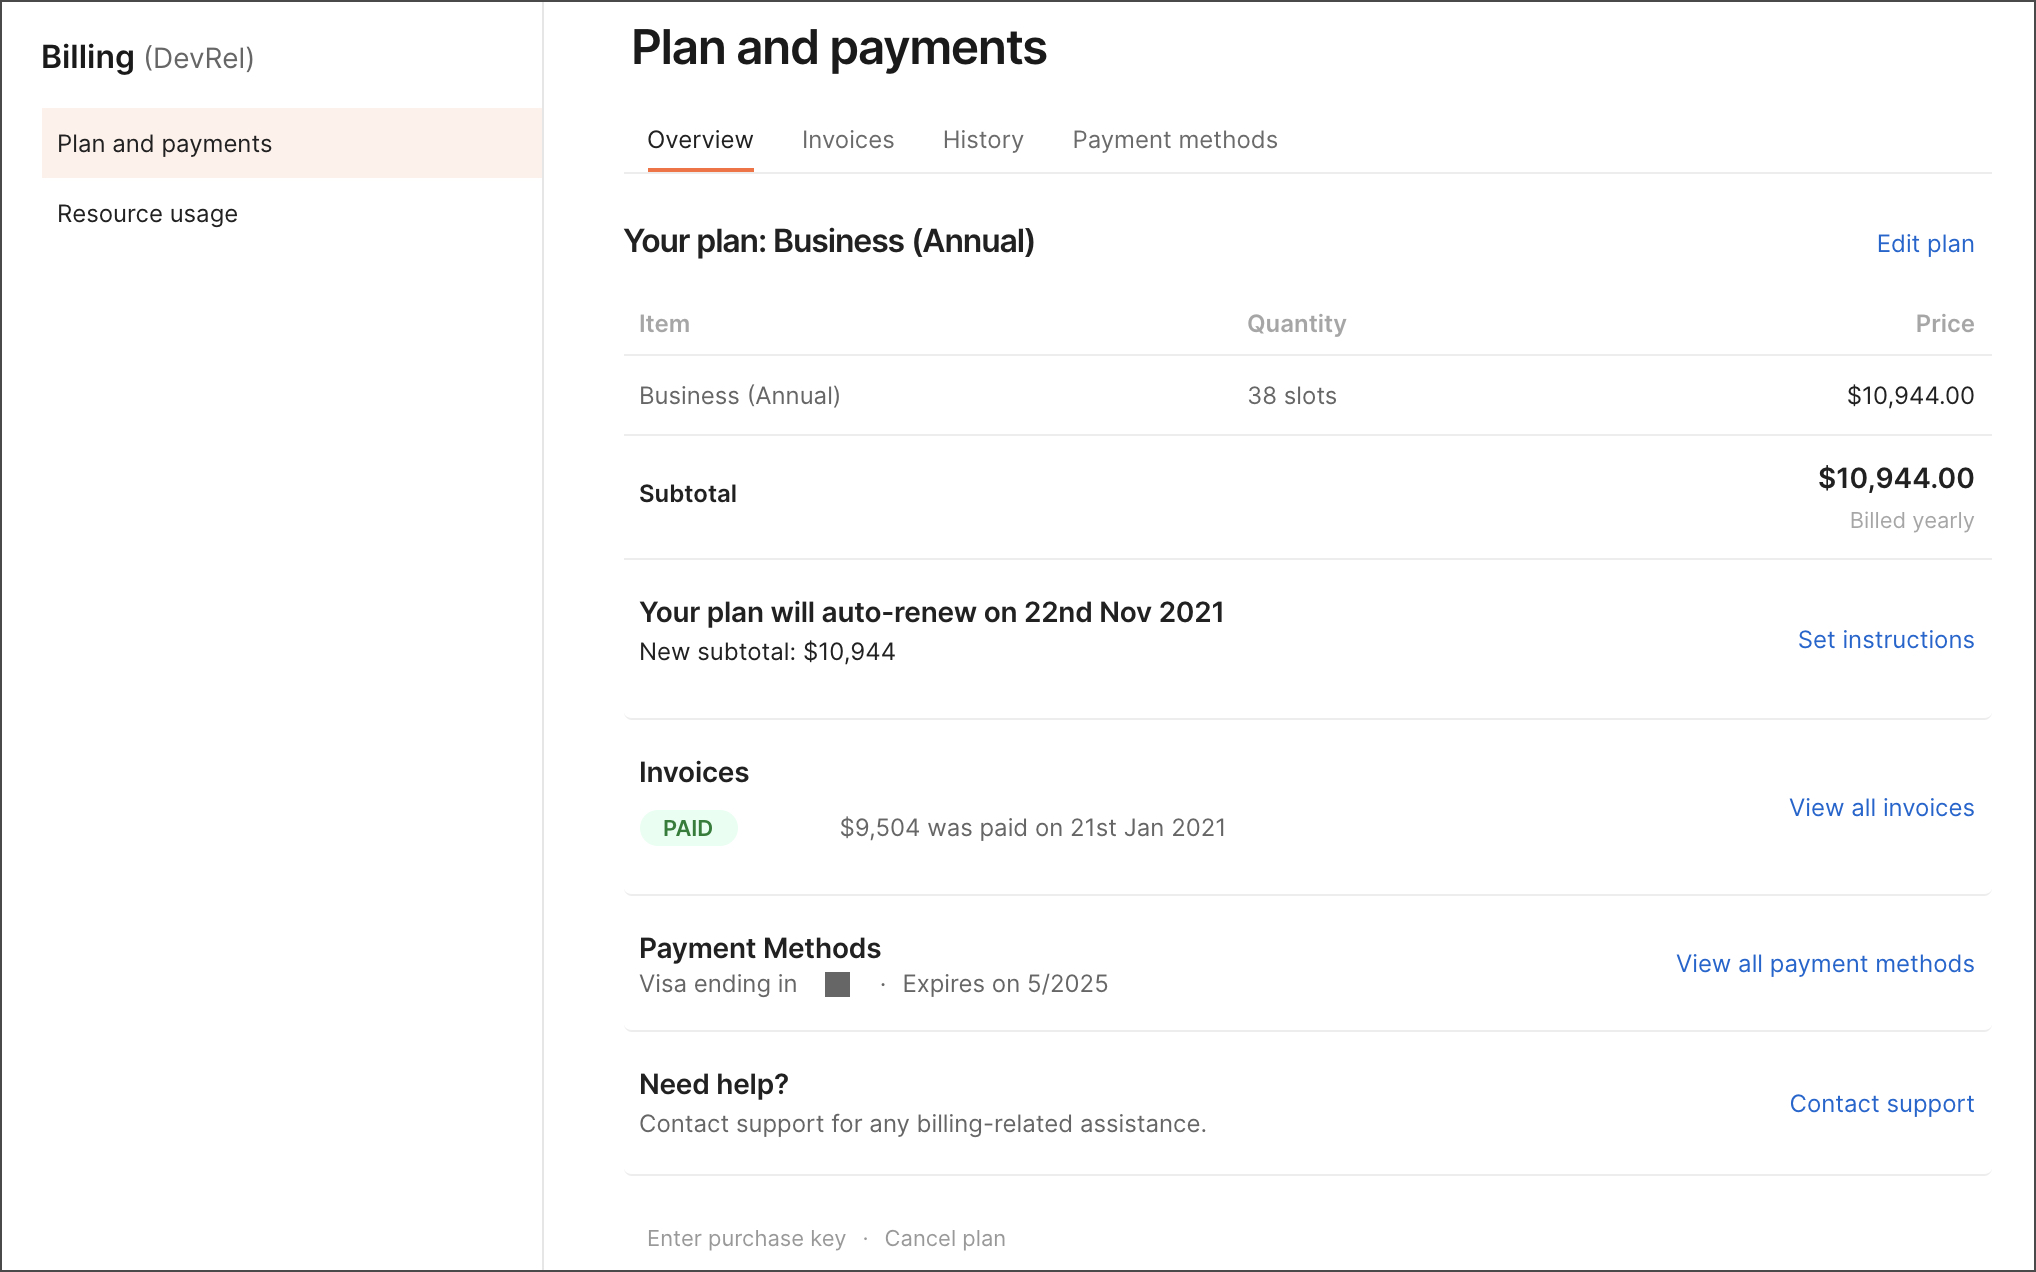 Billing overview